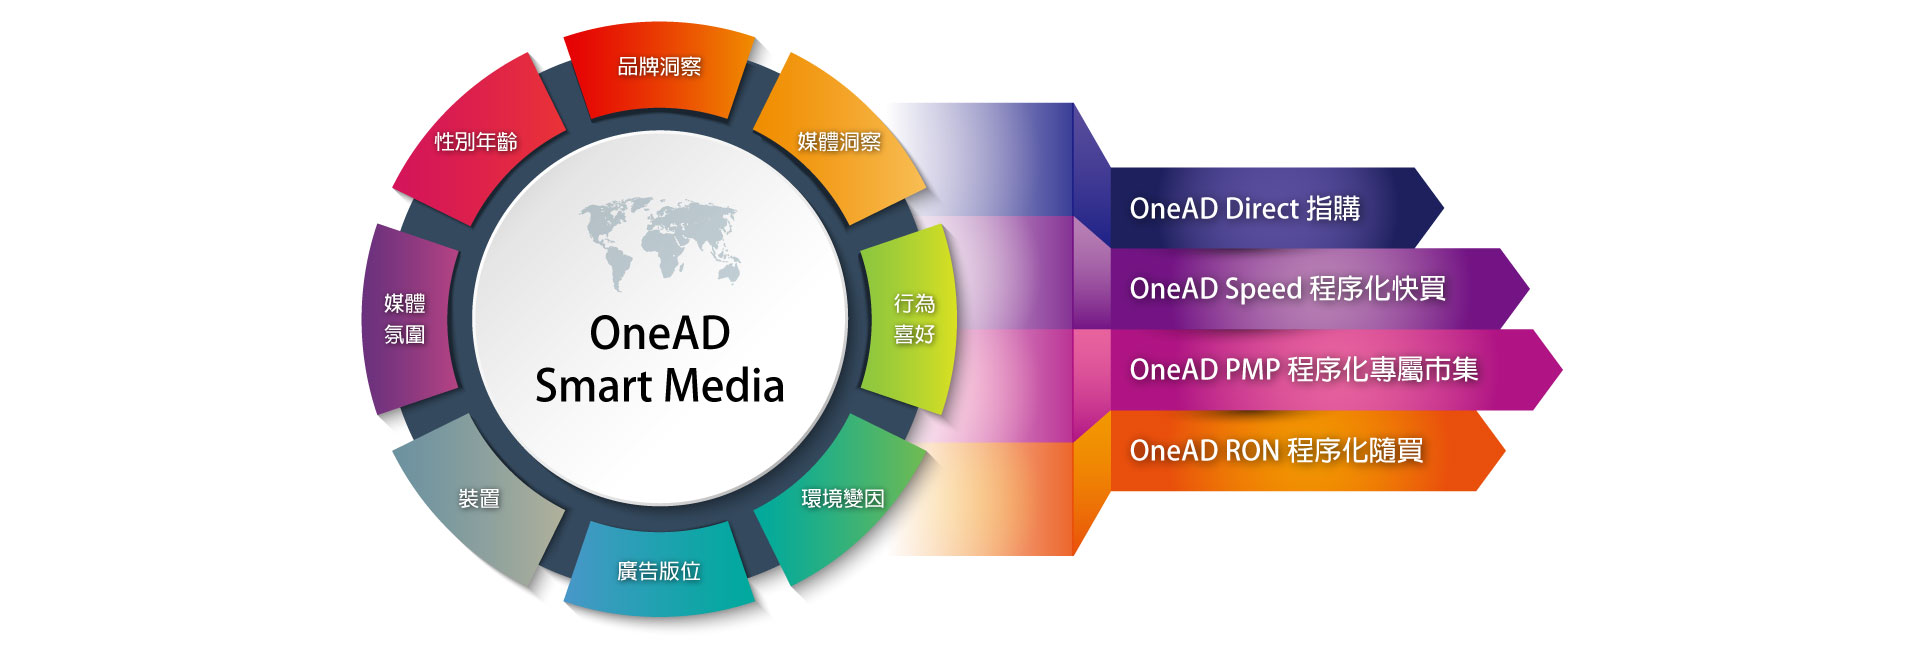 onead-master